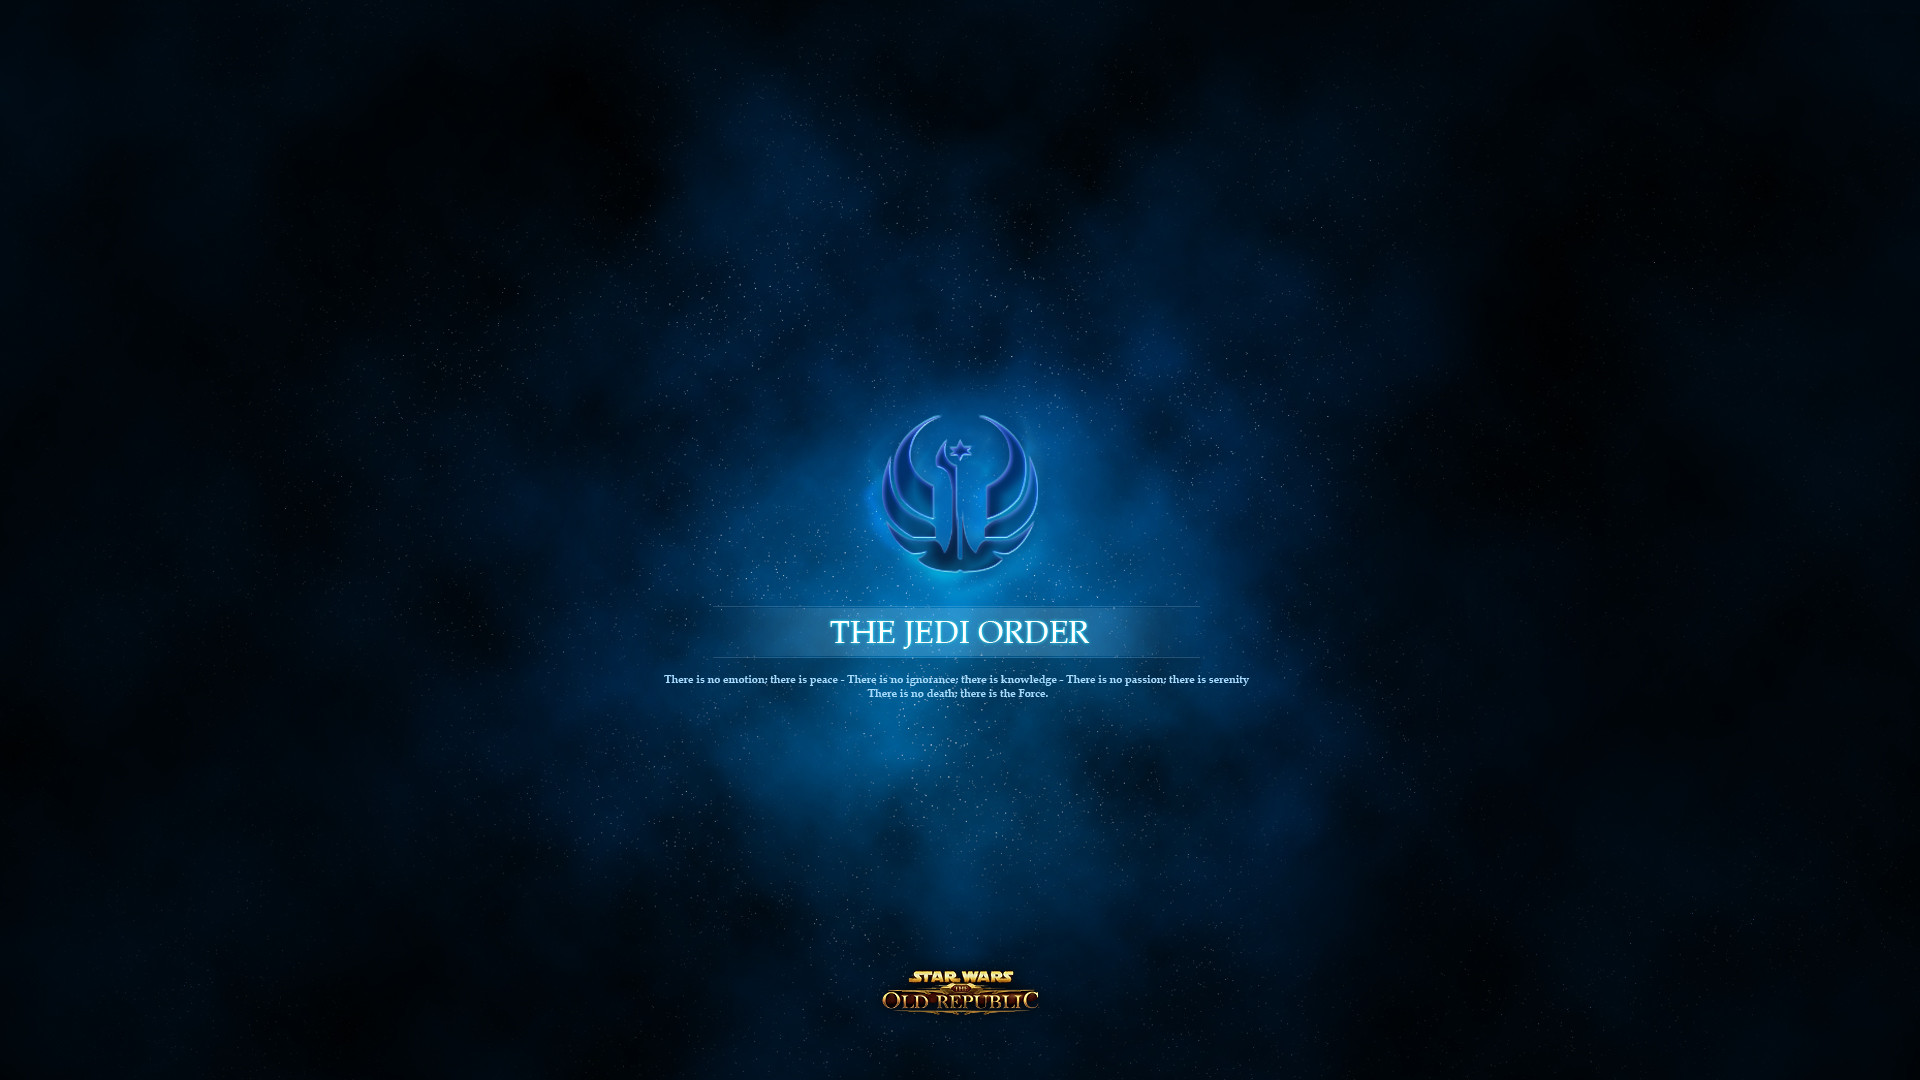 Video Game – Star Wars: The Old Republic Wallpaper